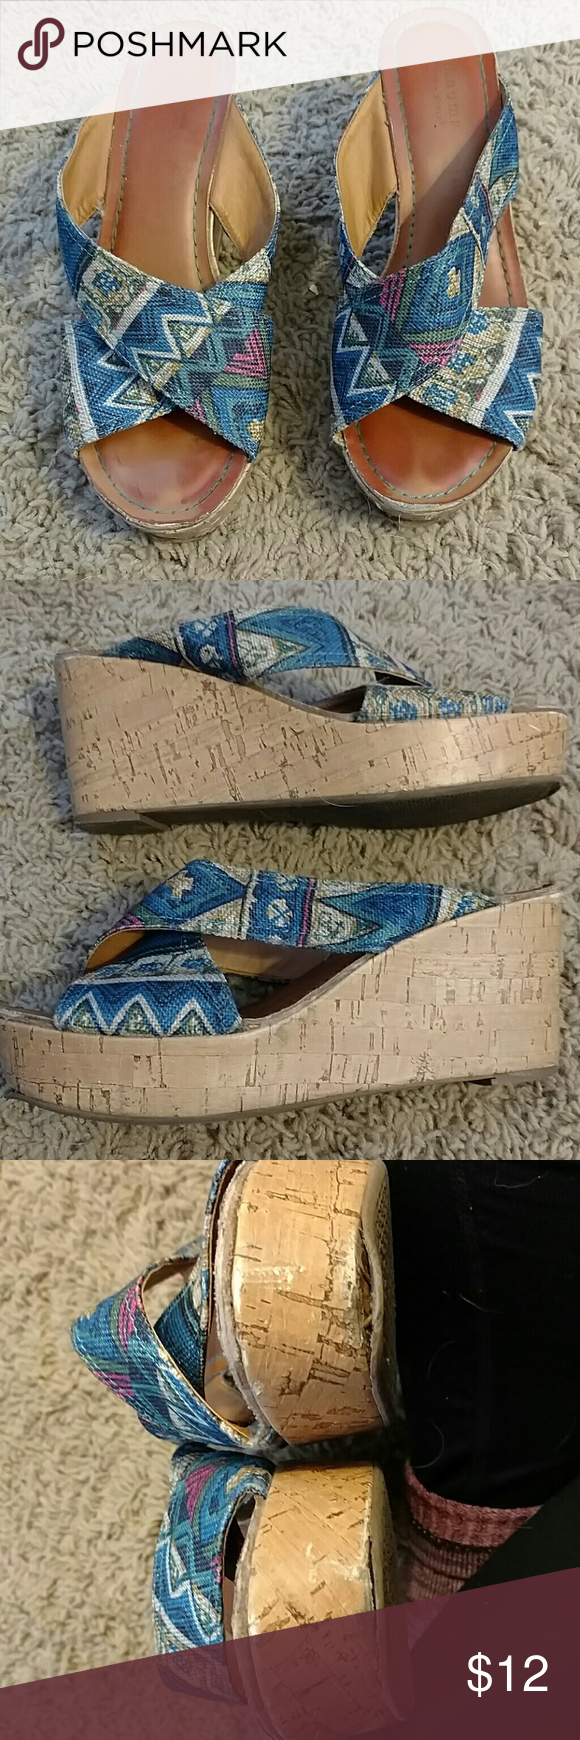 Cute multicolor wedges size 7.5 Well worn and loved, some damage to. Otherwise fronts and backs of the sandals... Definitely still wearable.  Criss cross top is a canvas like material. Sonoma Shoes Wedges